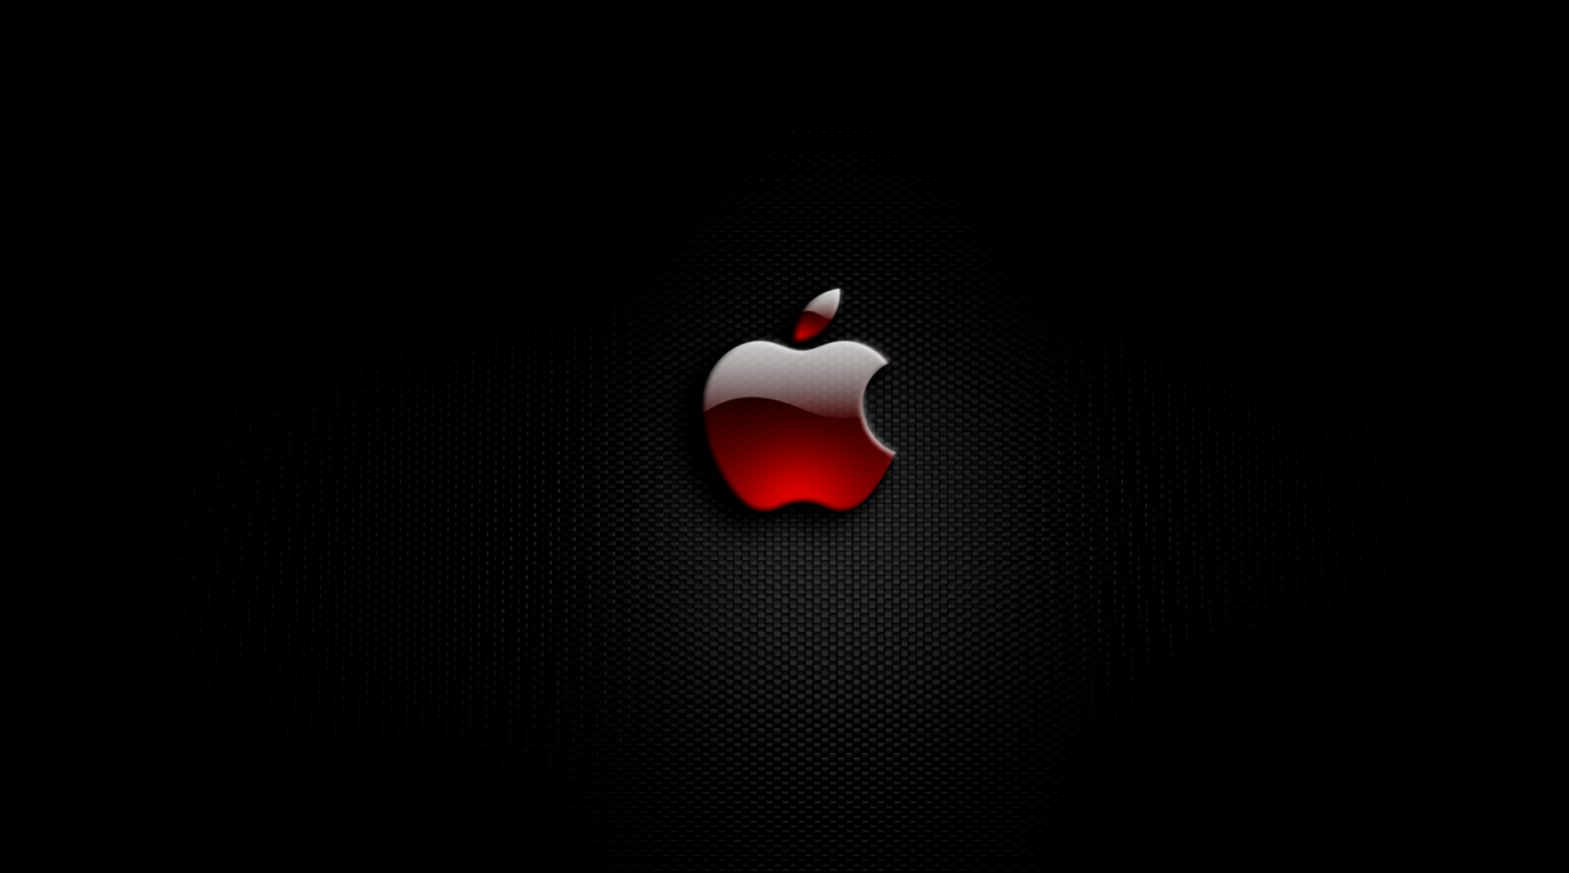 mac apple wallpapers hd apple red | wallpapers collection